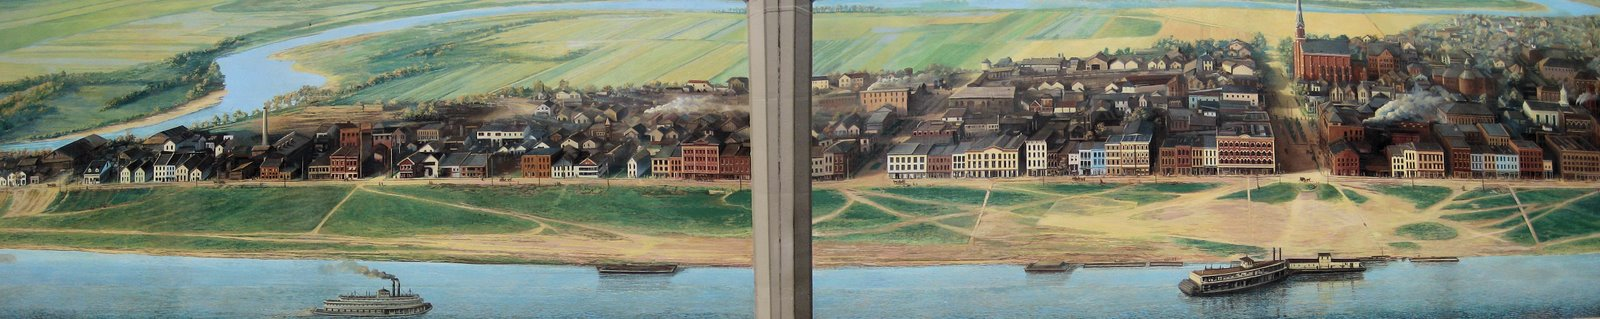 Floodwall Mural of Portsmouth, Ohio, 1903.